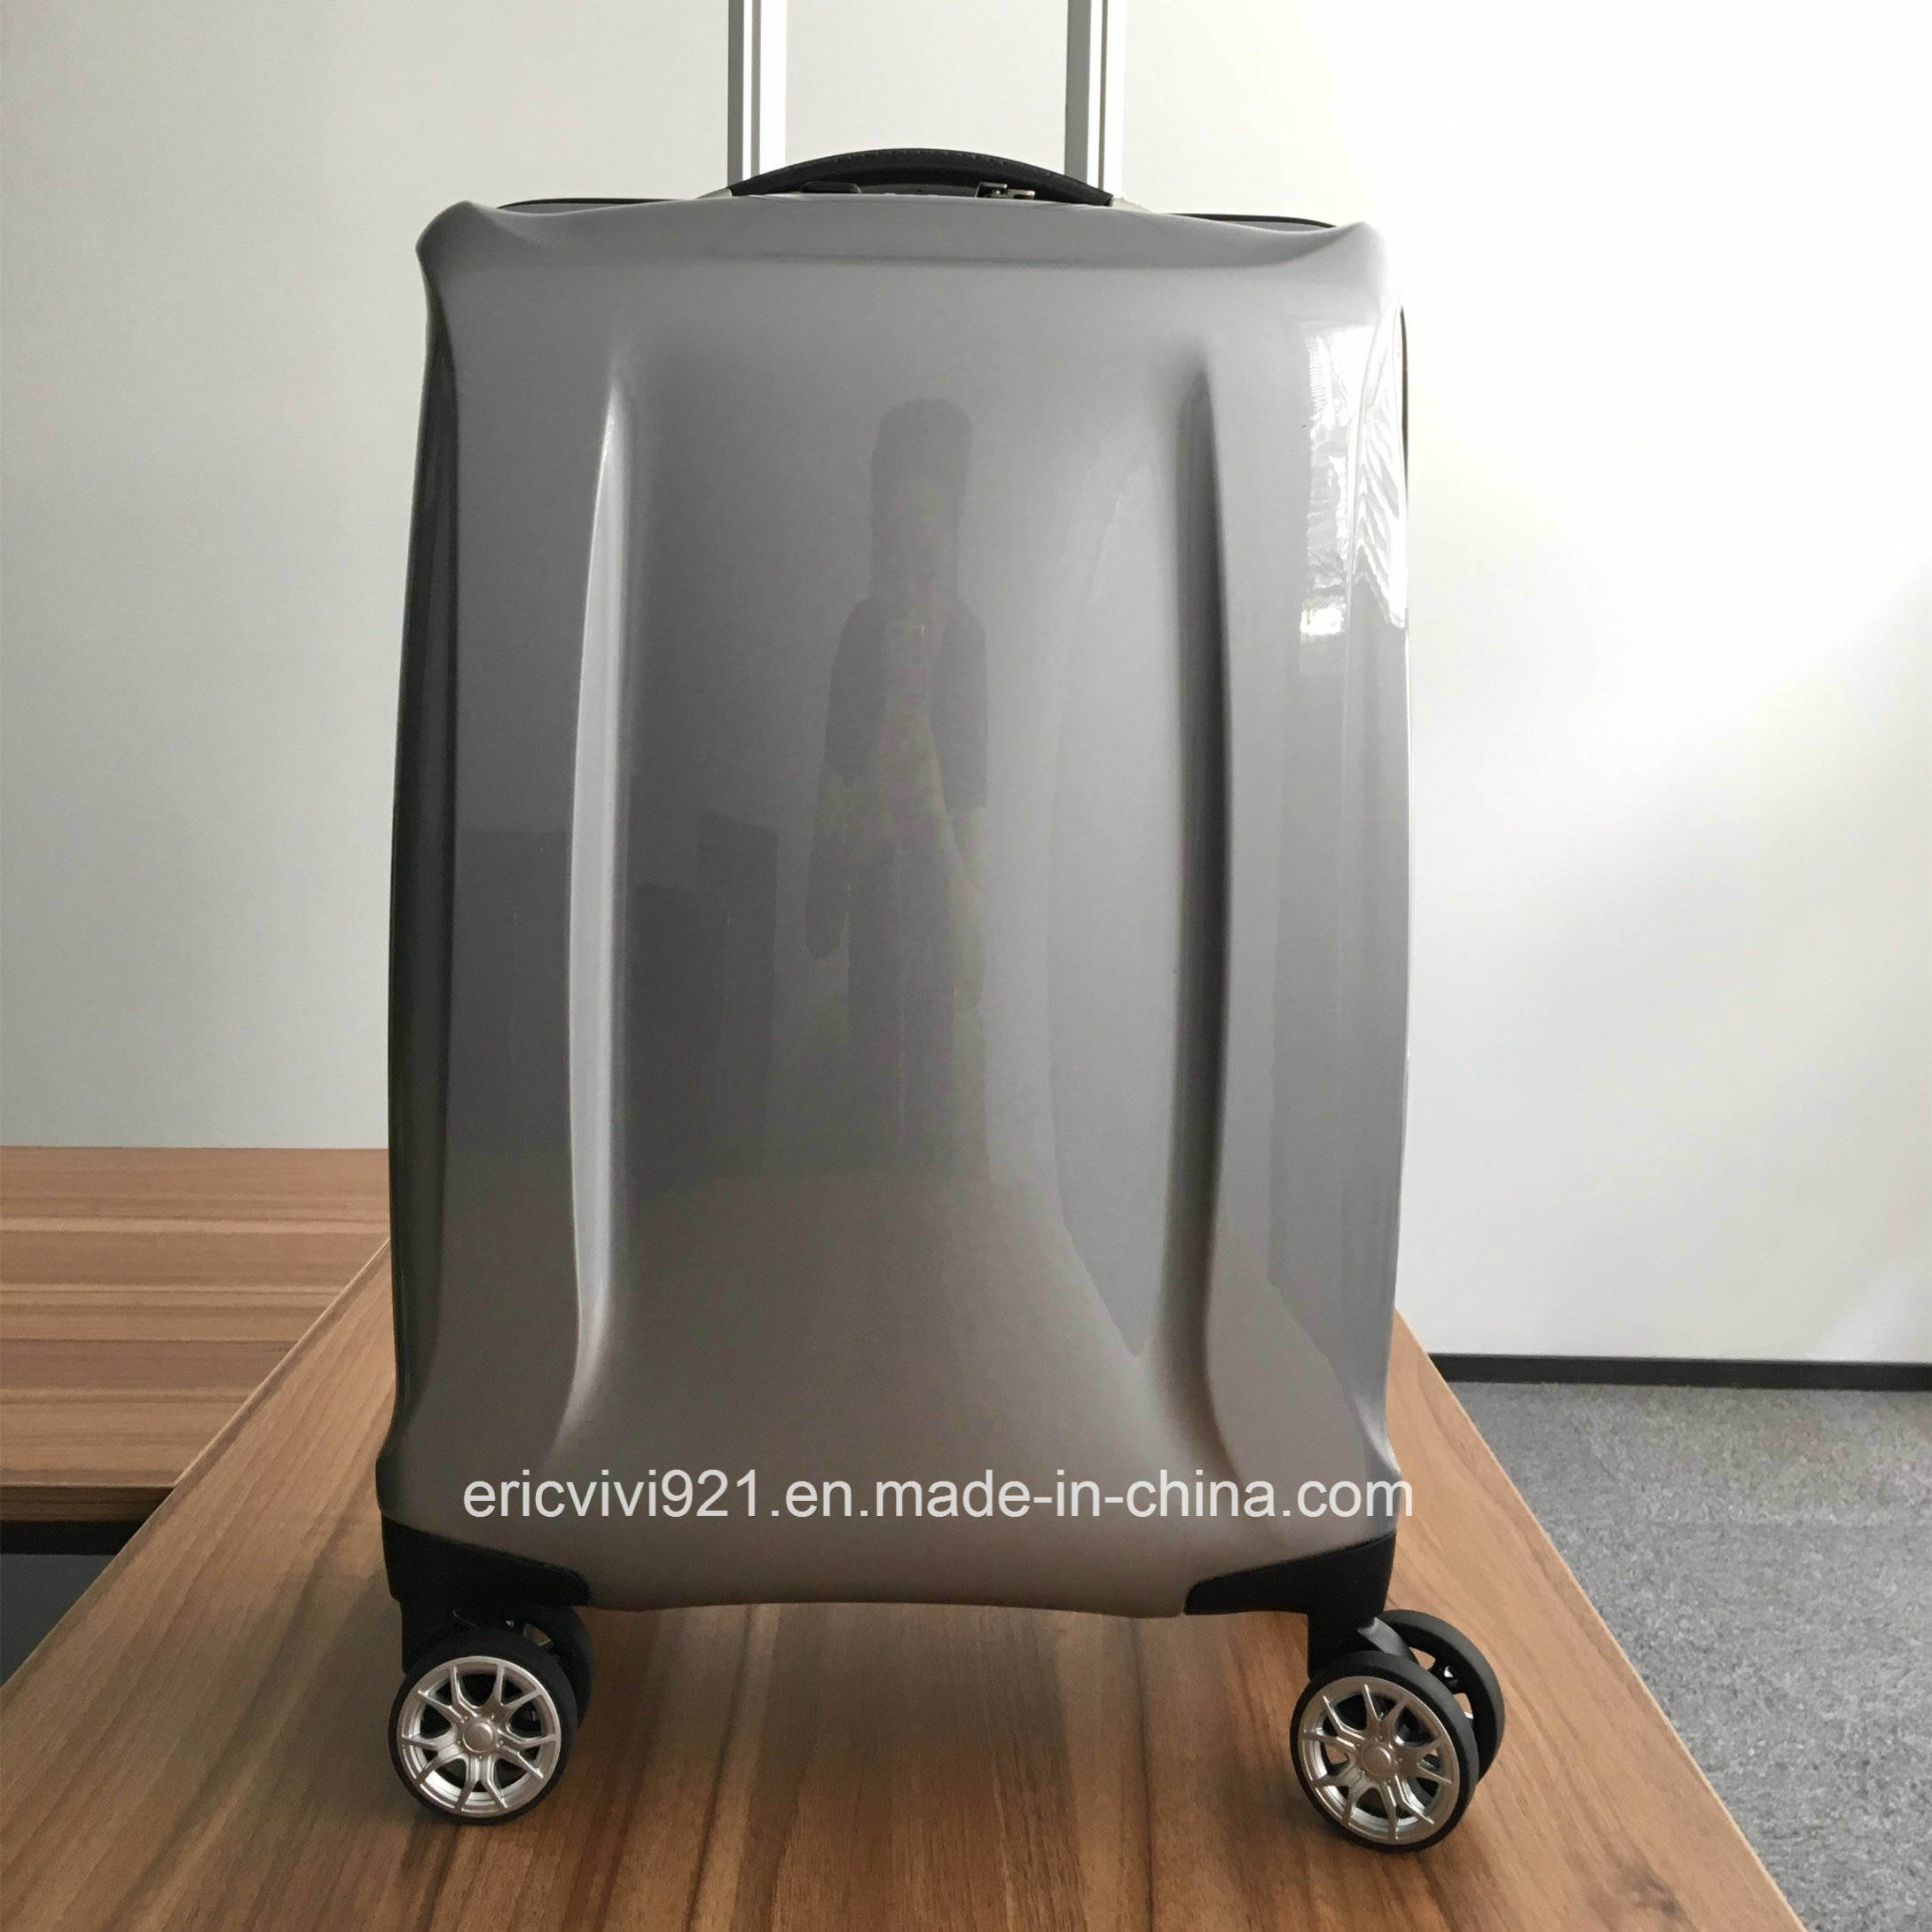 4a5dbe567 China Bo-M1606 100% Polycarbonate Two Tone Colors Shell New Design Trolley  Luggage - China Luggage